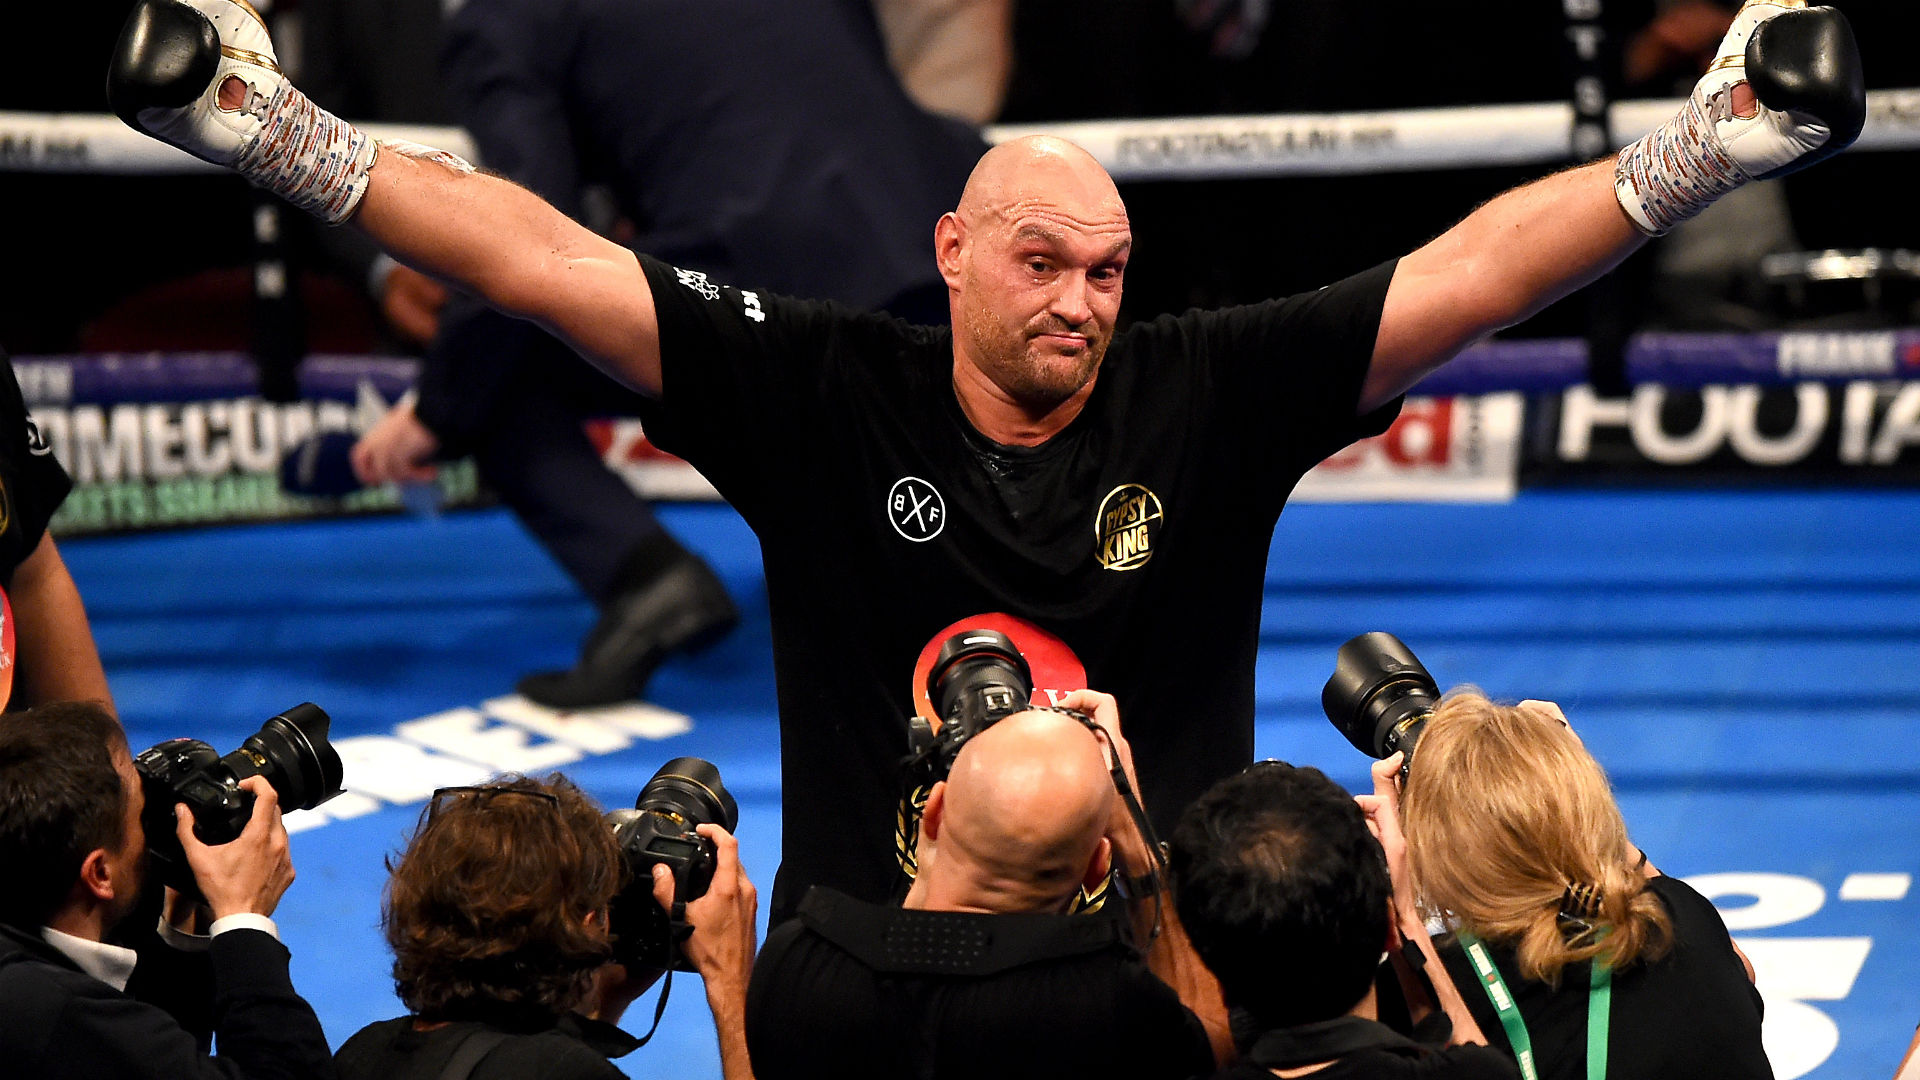 Tyson Fury: Anthony Joshua is a 'disgrace to boxing' for not facing Deontay Wilder